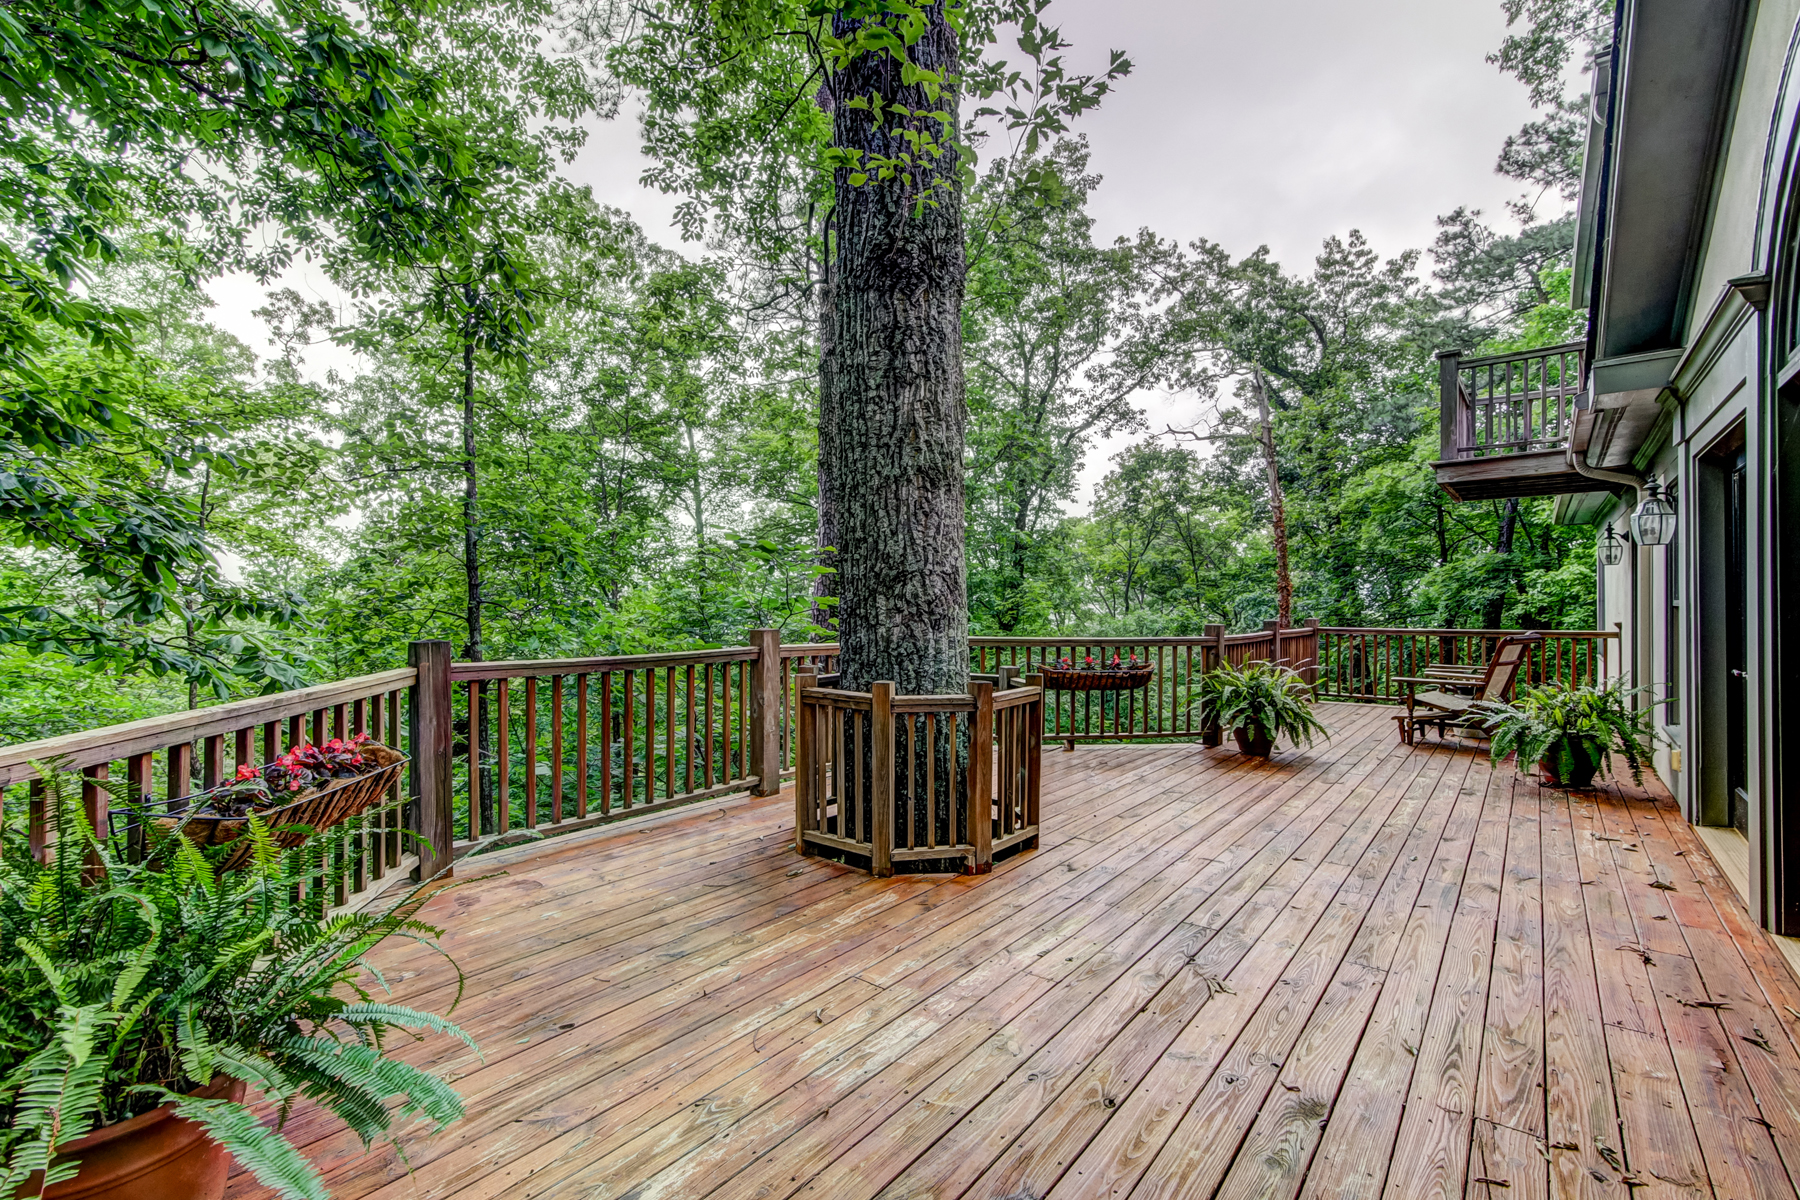 Additional photo for property listing at Secluded Home Overlooking the Chattahoochee River 4990 Riverview Rd, Sandy Springs, Georgia 30327 United States